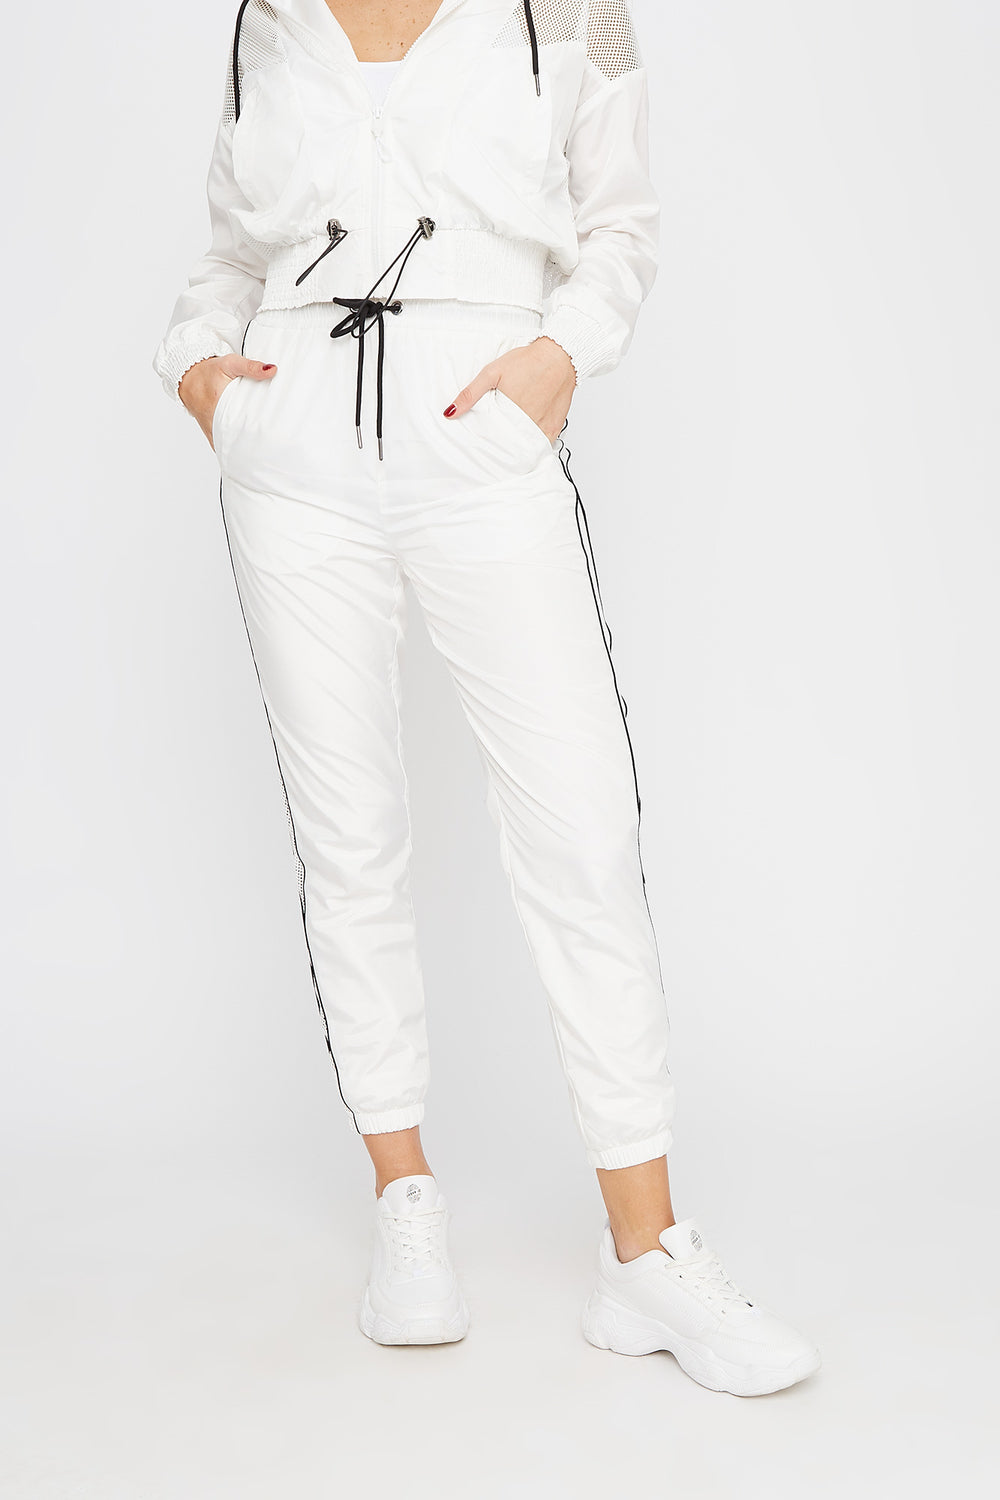 Net Insert Neon Piping Windbreaker Jogger White